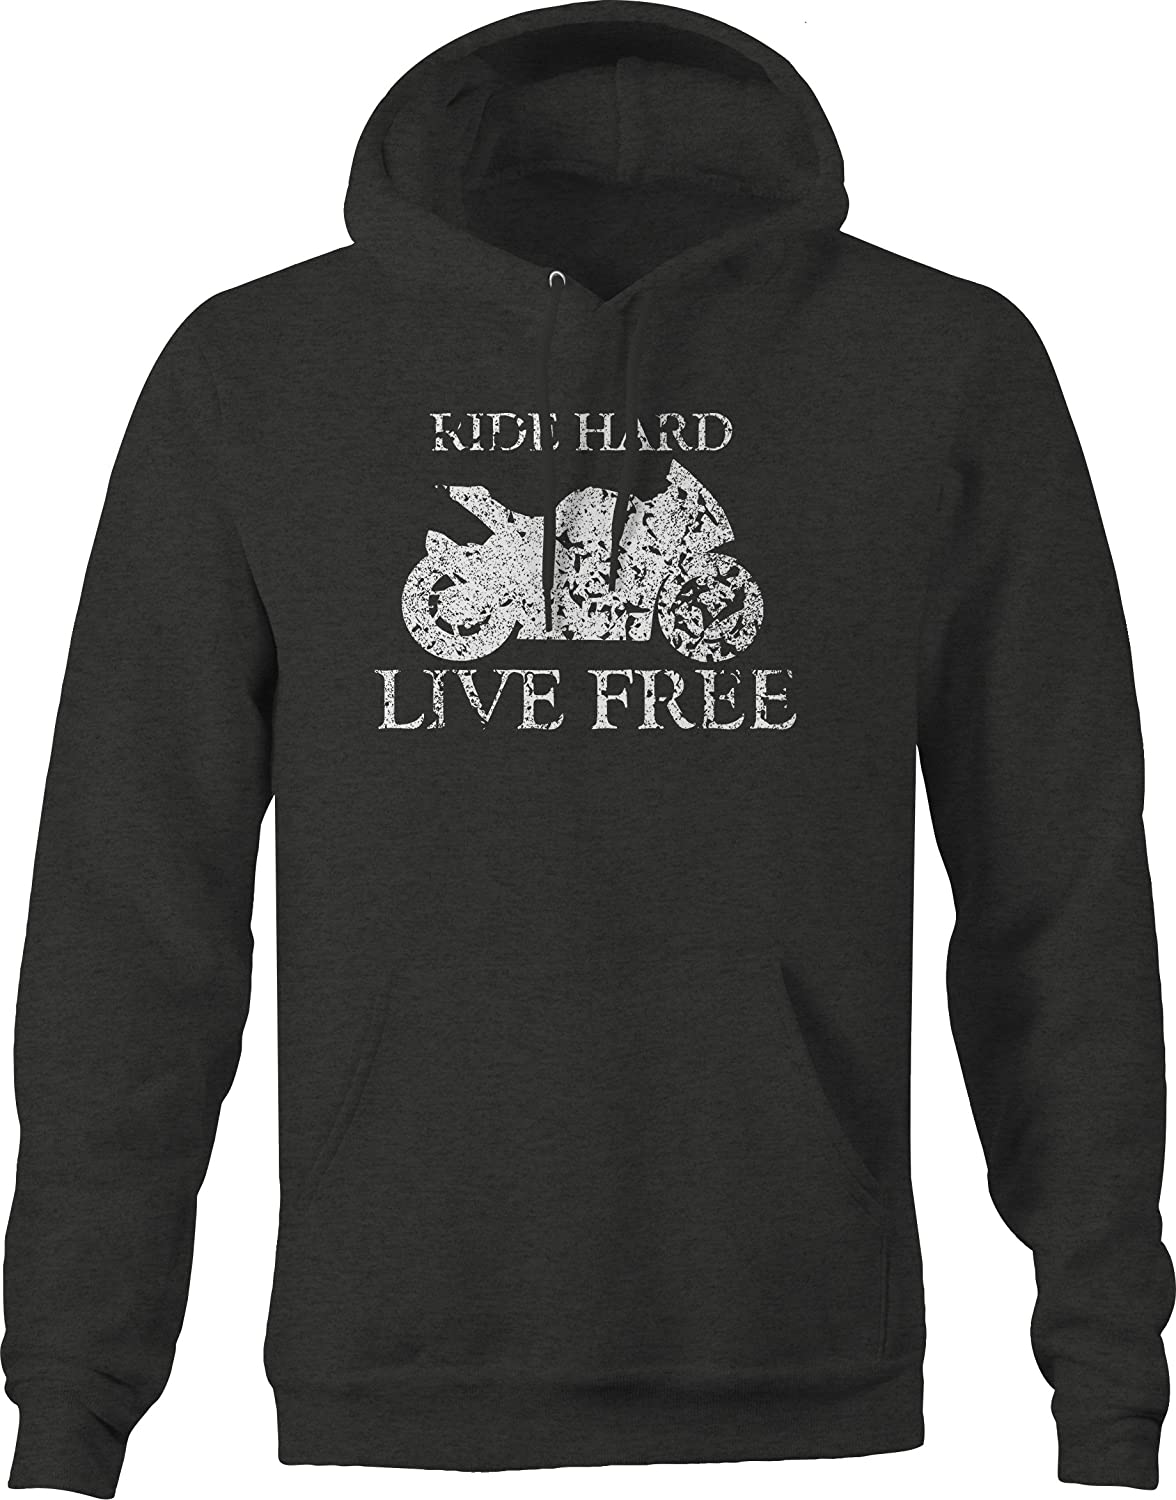 Vintage Motorcycle Ride Hard Live Free Street Sport Bike Graphic Hoodie for Men